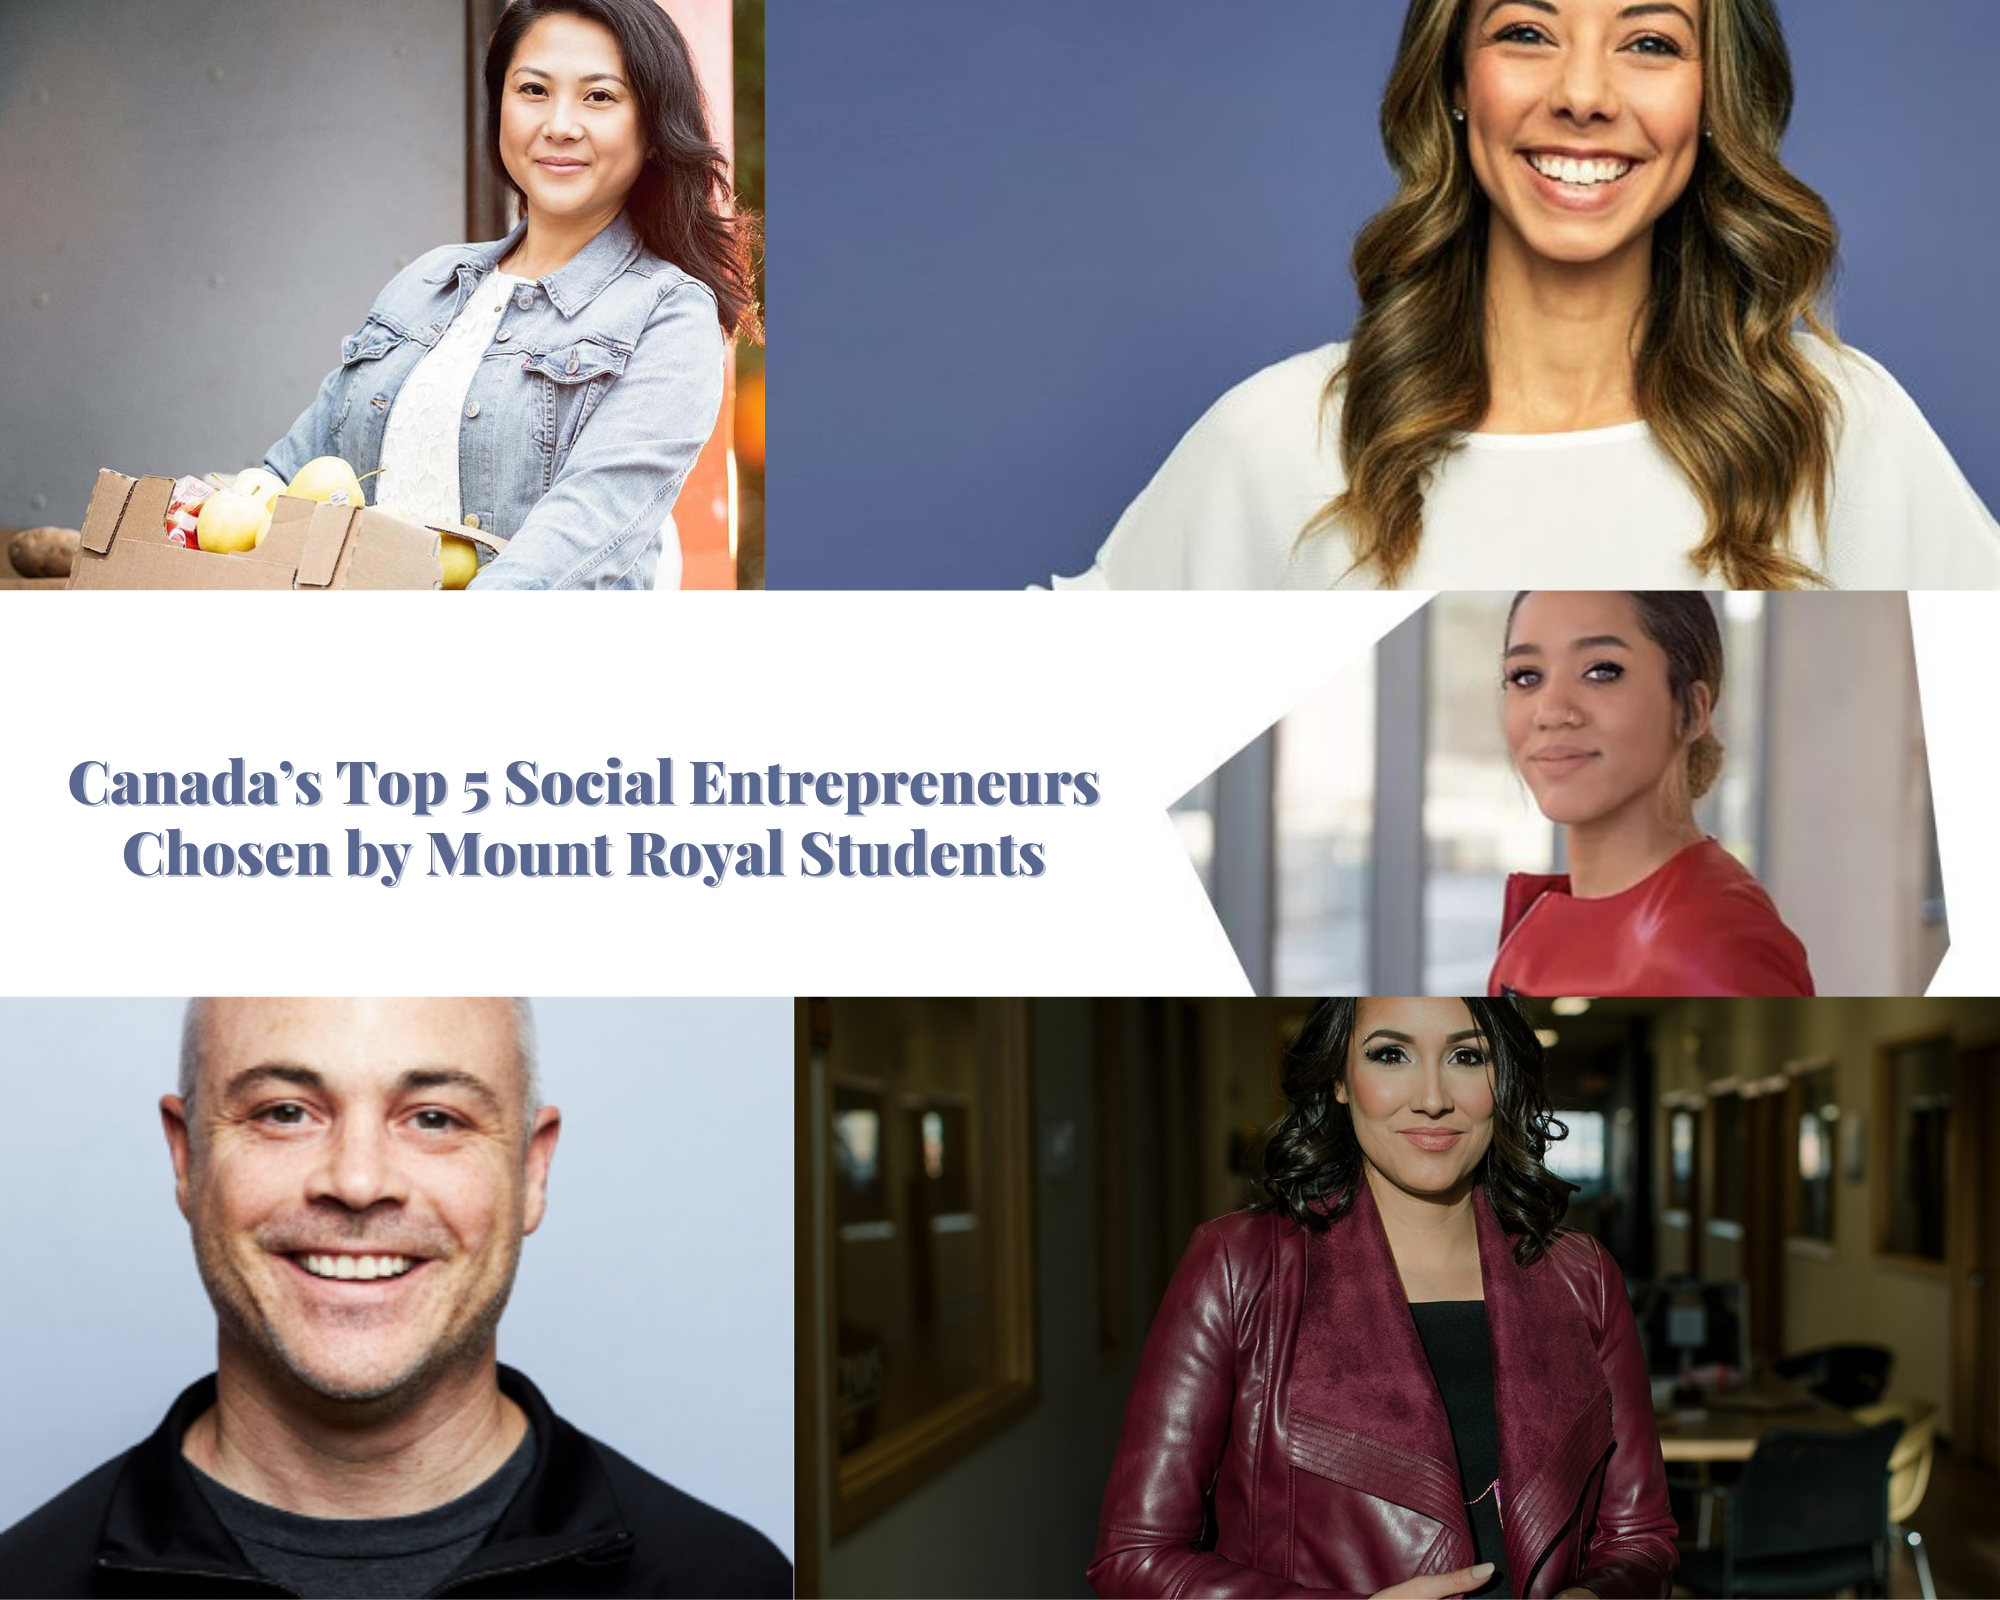 Canada's Top 5 Social Entrepreneurs Chosen by Mount Royal Students